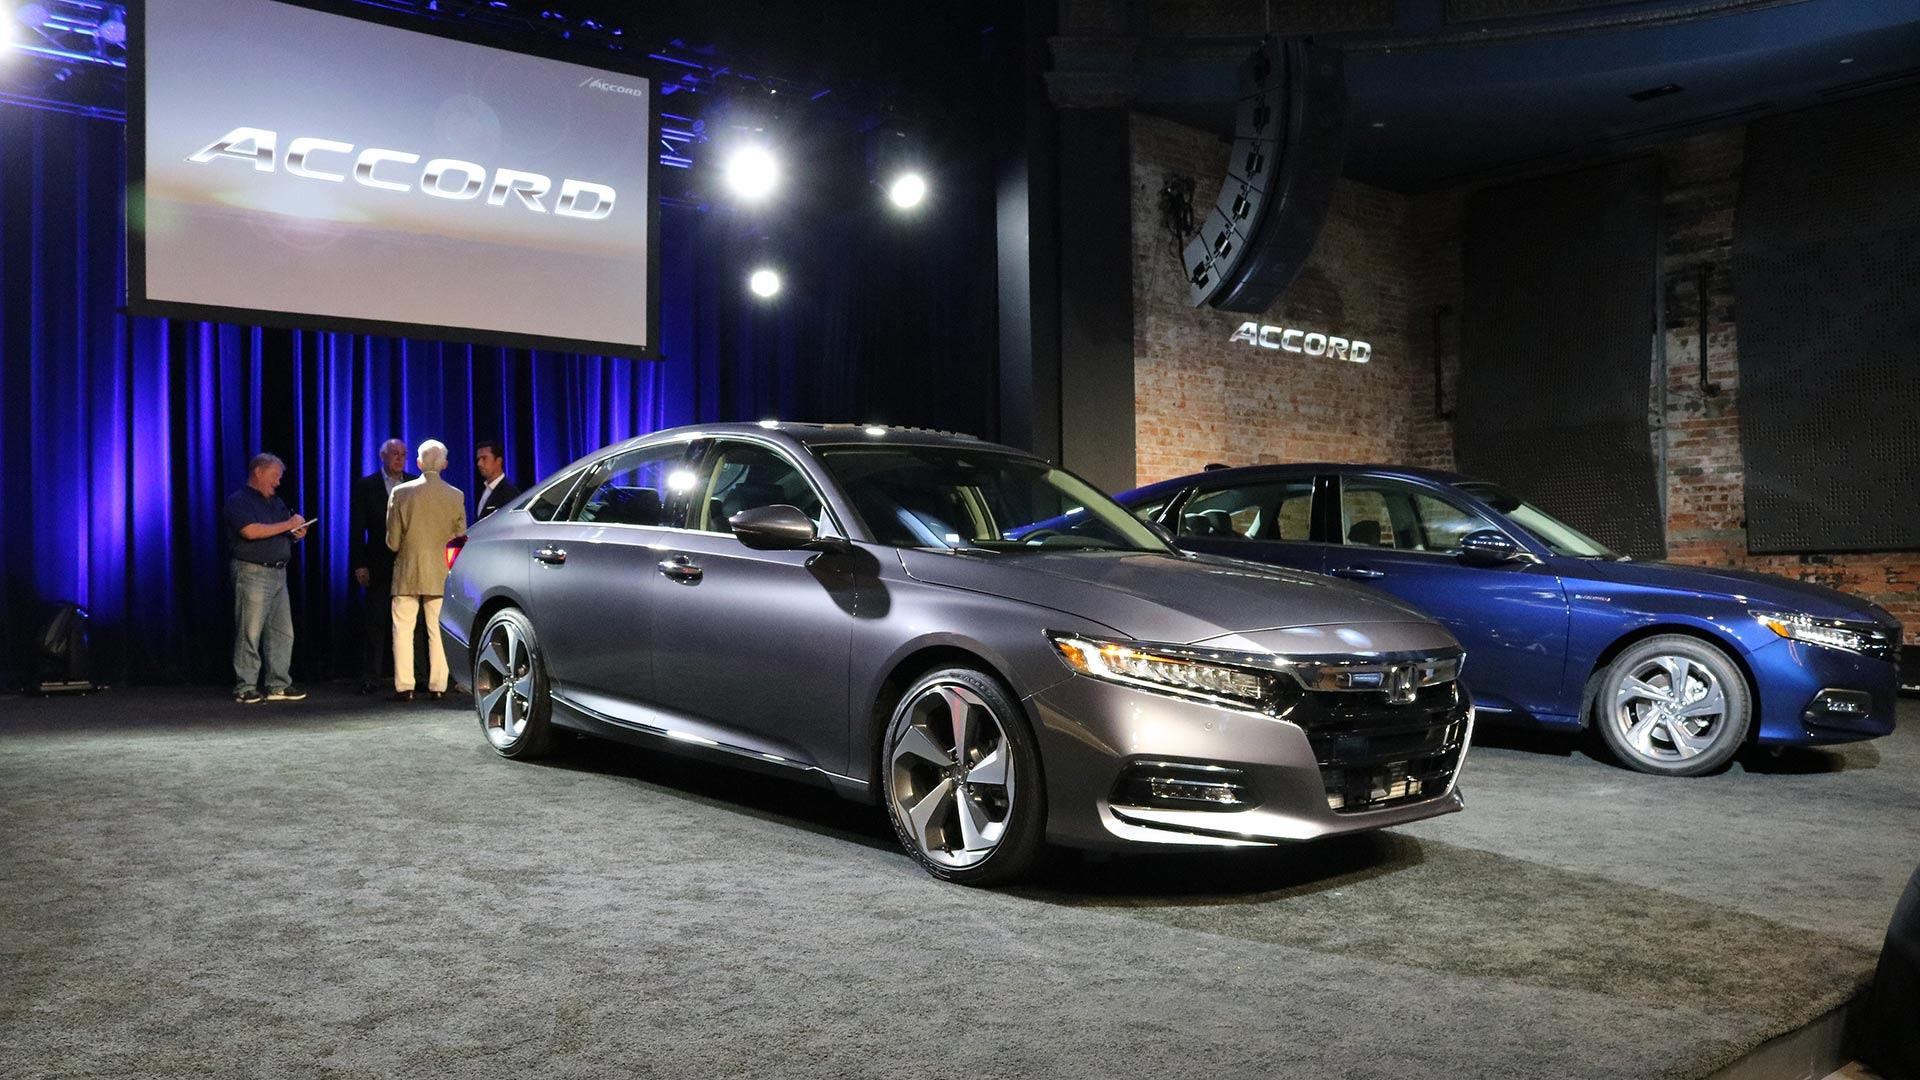 Discover the ins and outs of the 2018 honda accord in 4 videos for Honda accord 2018 price in usa